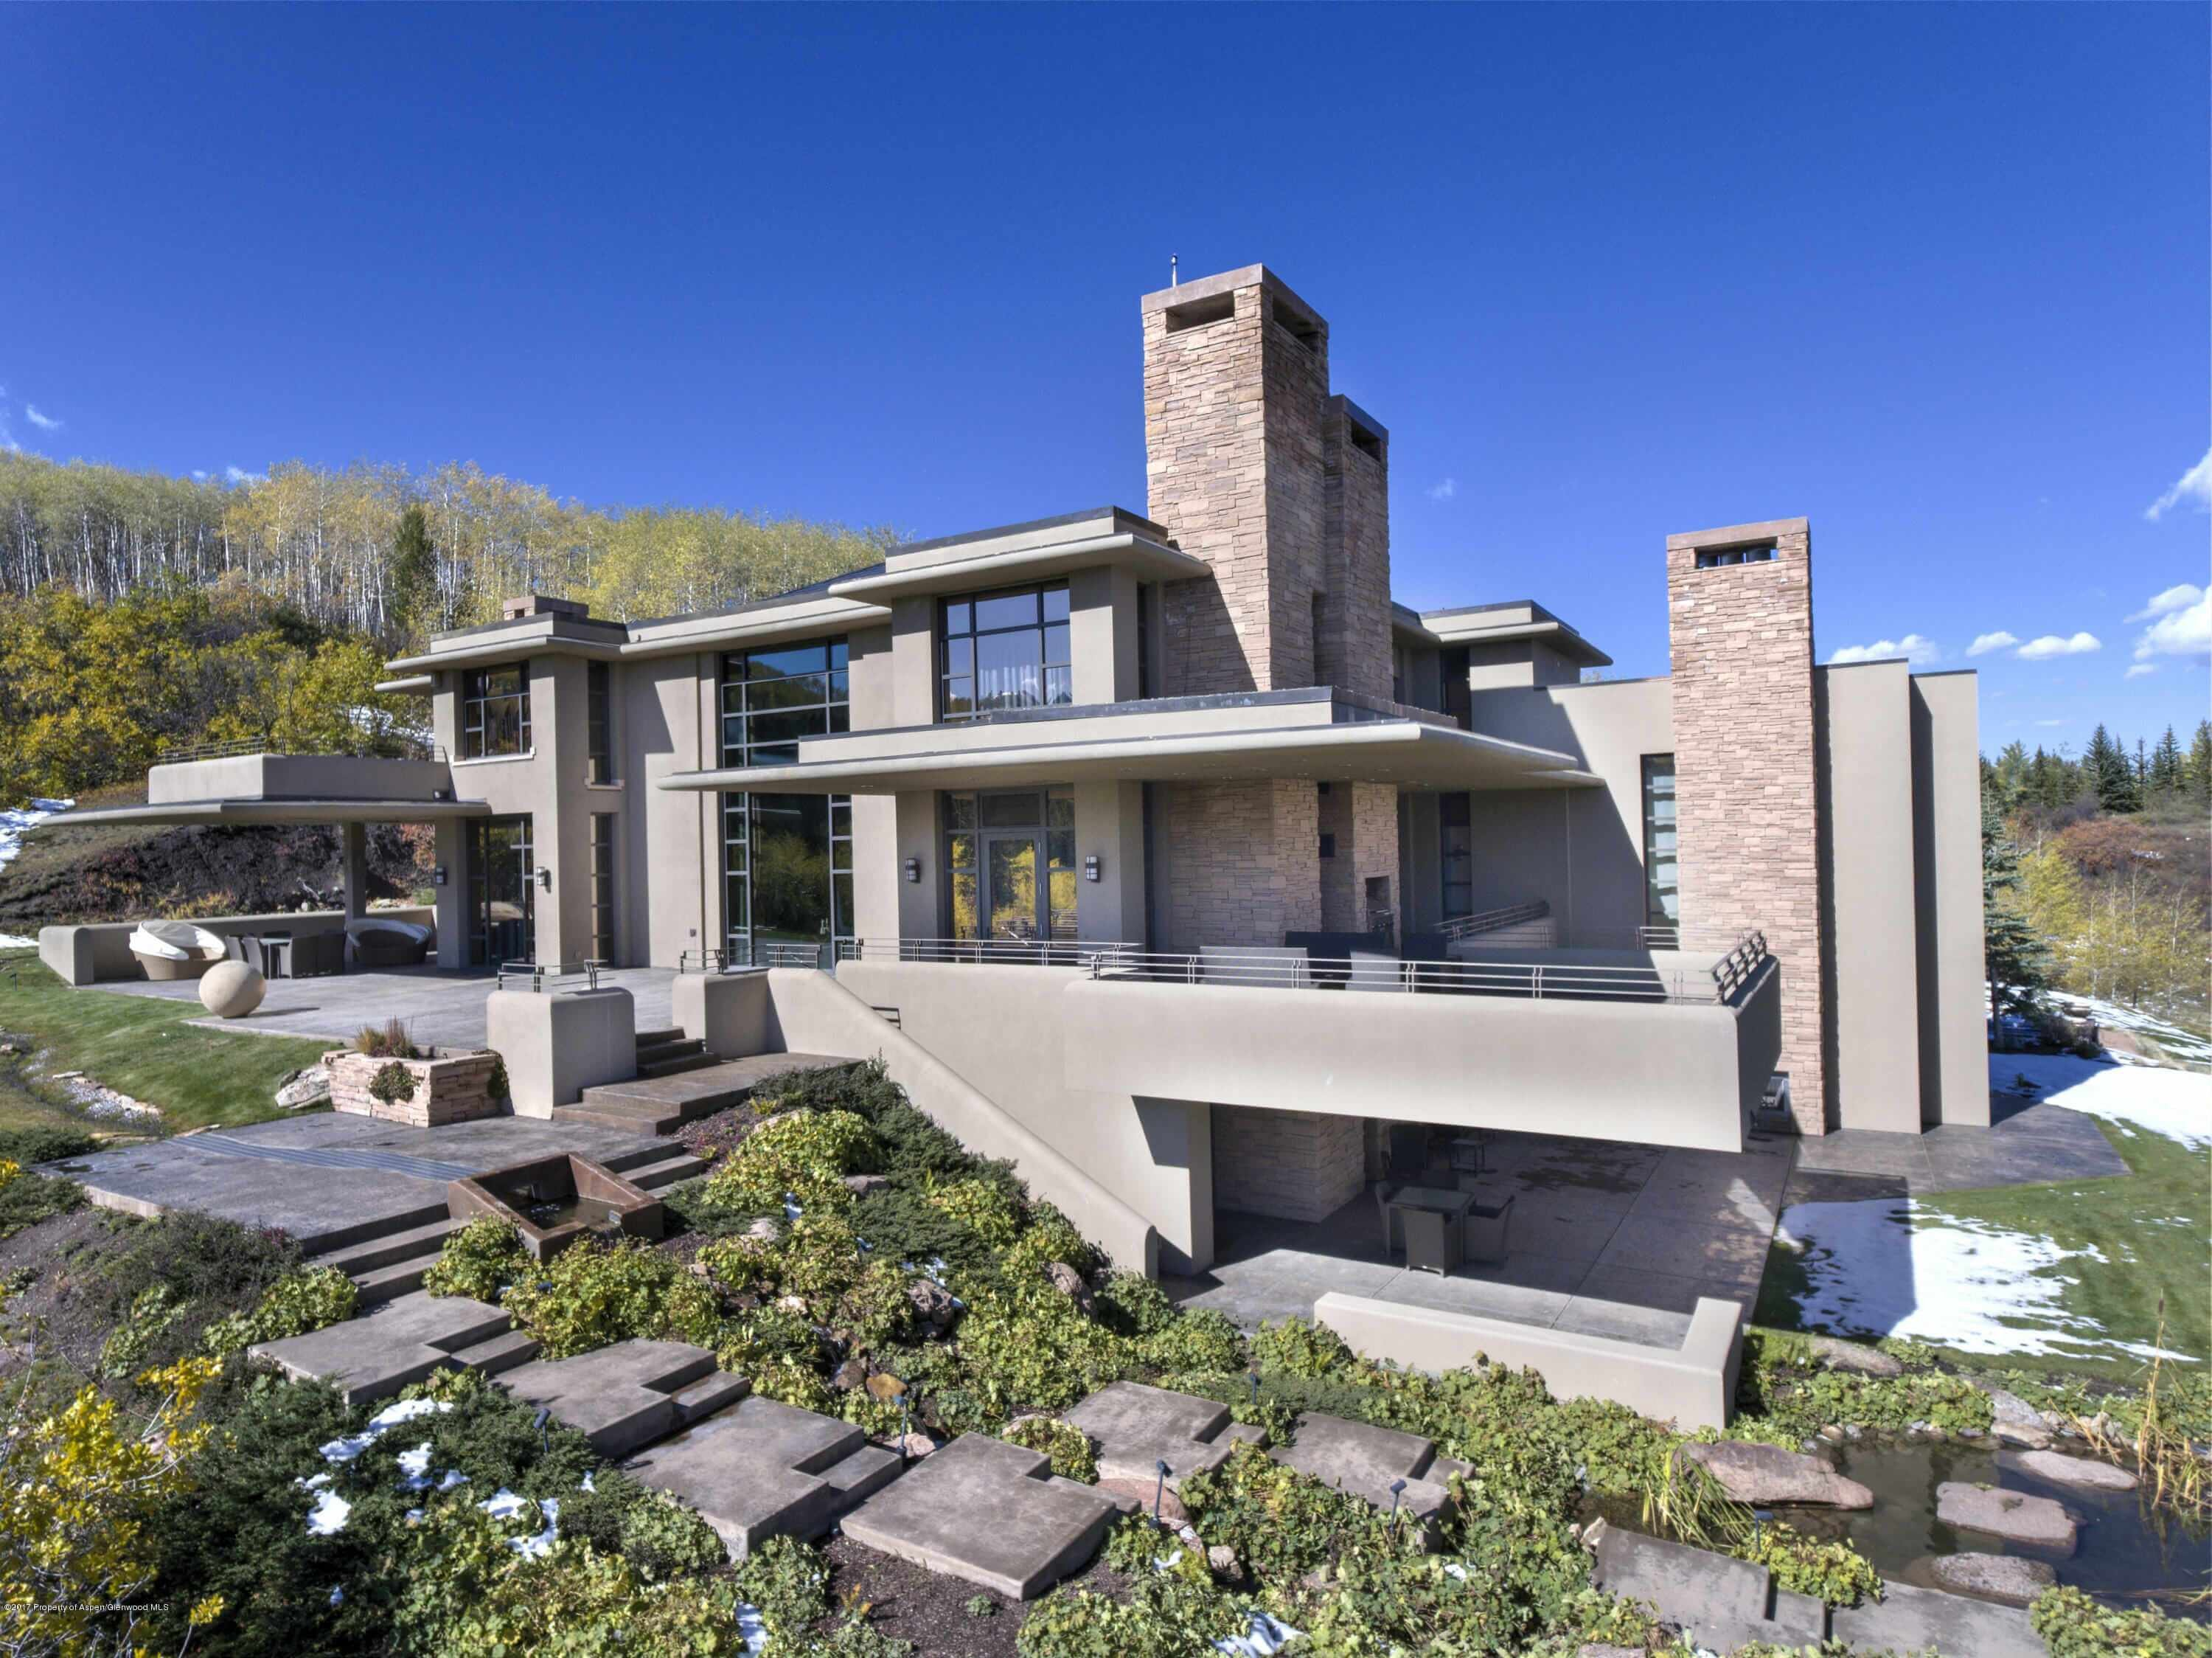 2006 Built Contemporary Aspen Estate in Eagle Pines Closes at $19.5M/$1,538 Sq Ft Image